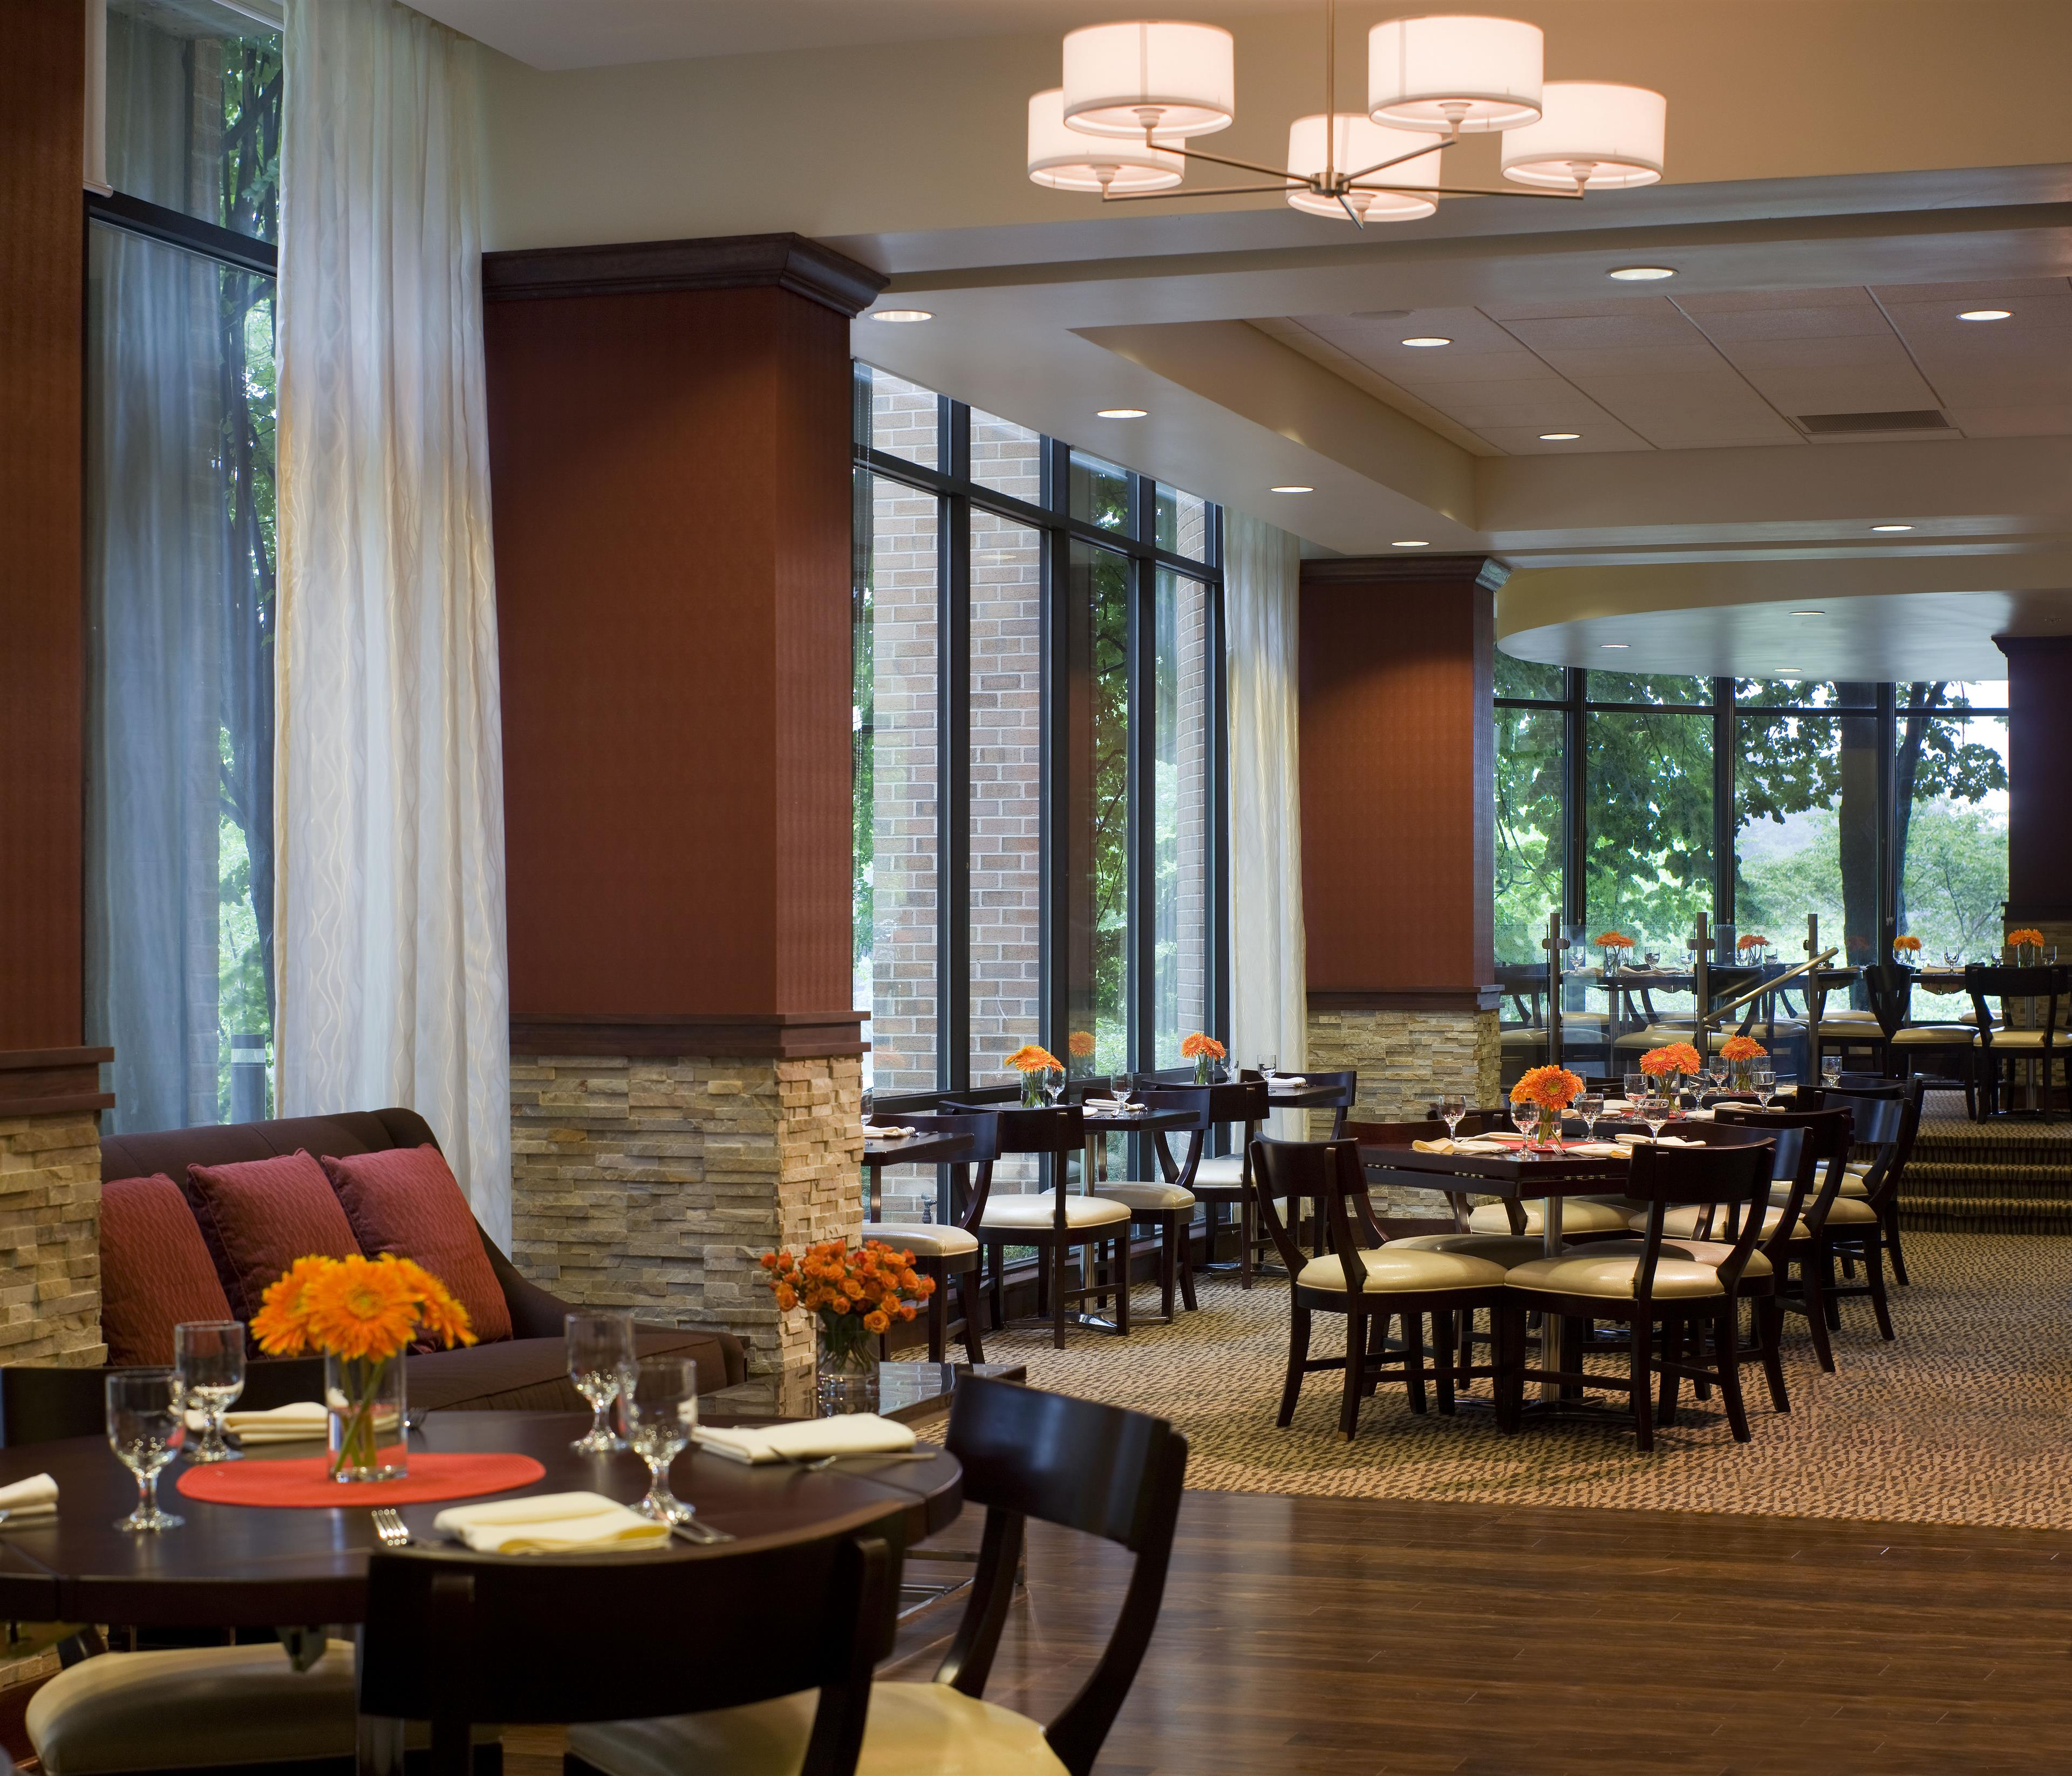 Town Center Columbia Md: Sheraton Columbia Town Center Hotel, Columbia Maryland (MD